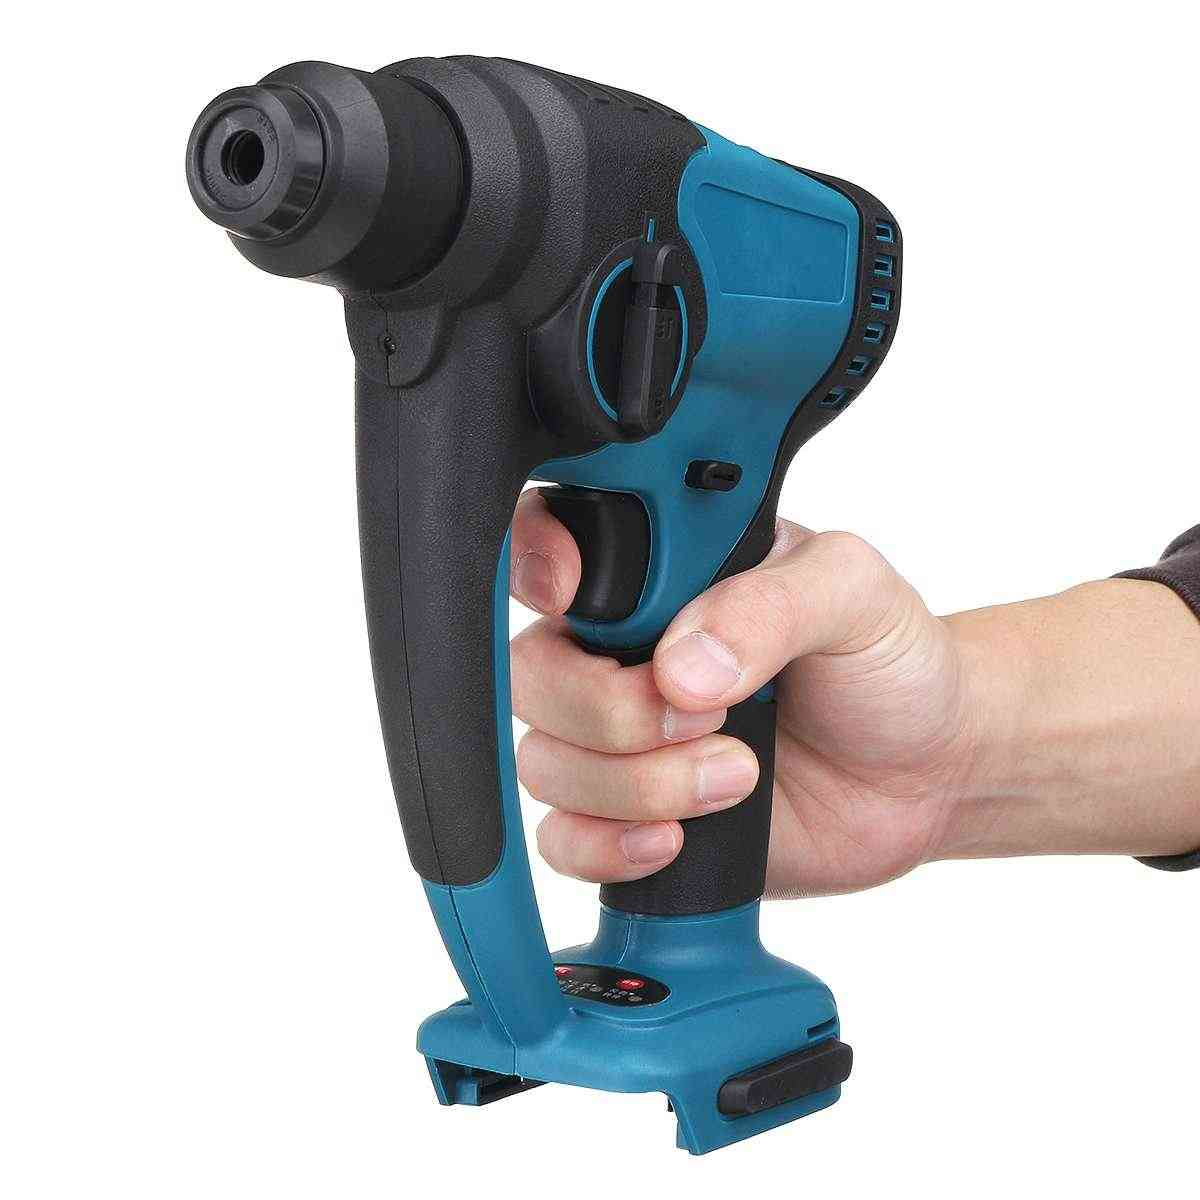 Rechargeable Brush Less Cordless Rotary Hammer Drill